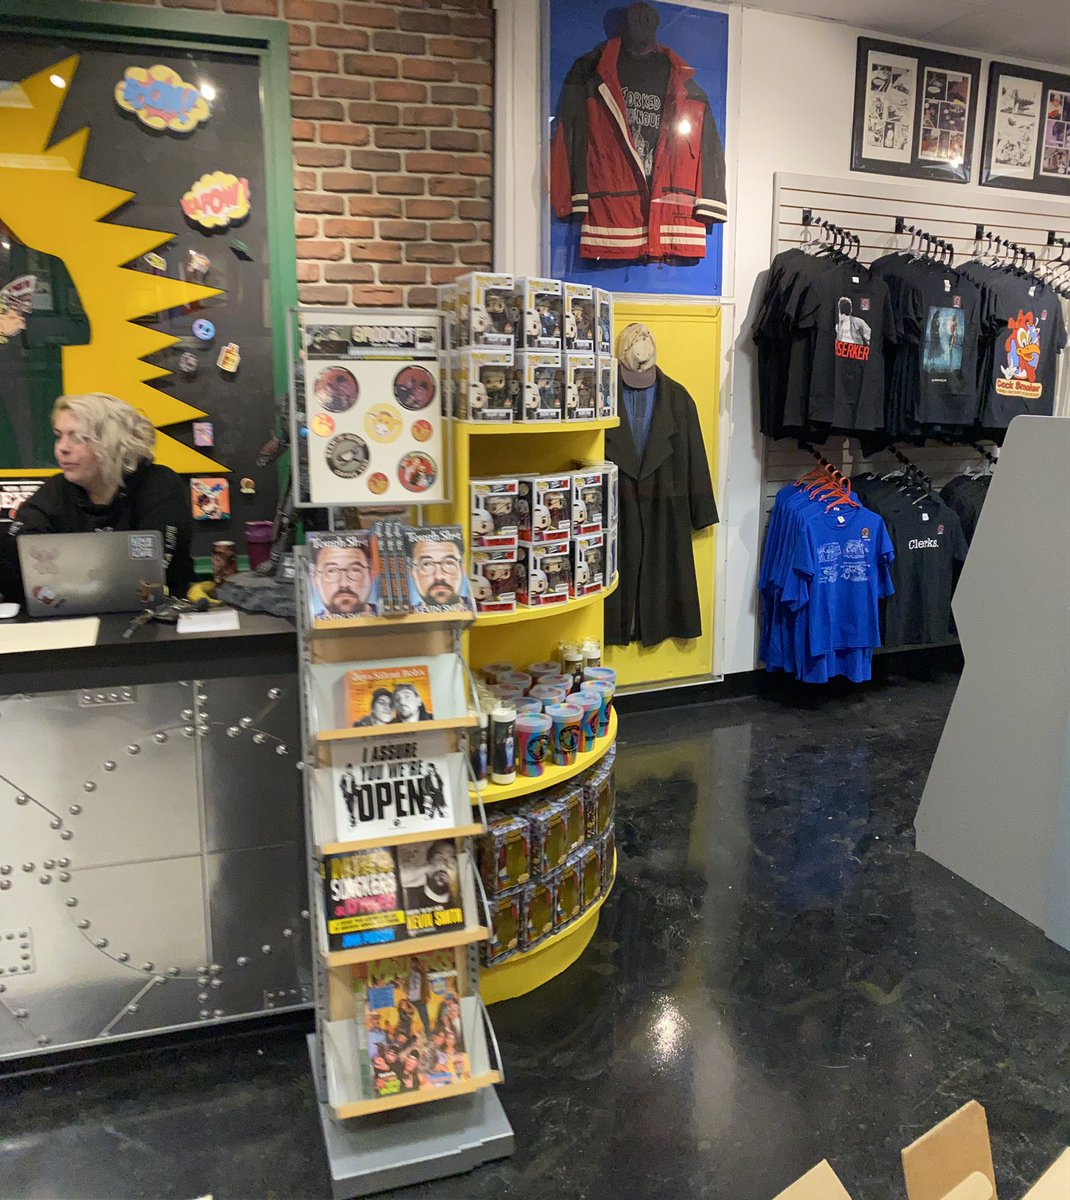 Can't wait for y'all to step into the NEW Jay and Silent Bob's Secret Stash! @OEodonnell7 and the team have been working their asses off to make this place the Greatest shop imaginable! Doors open at 10am on Monday, February 22nd.